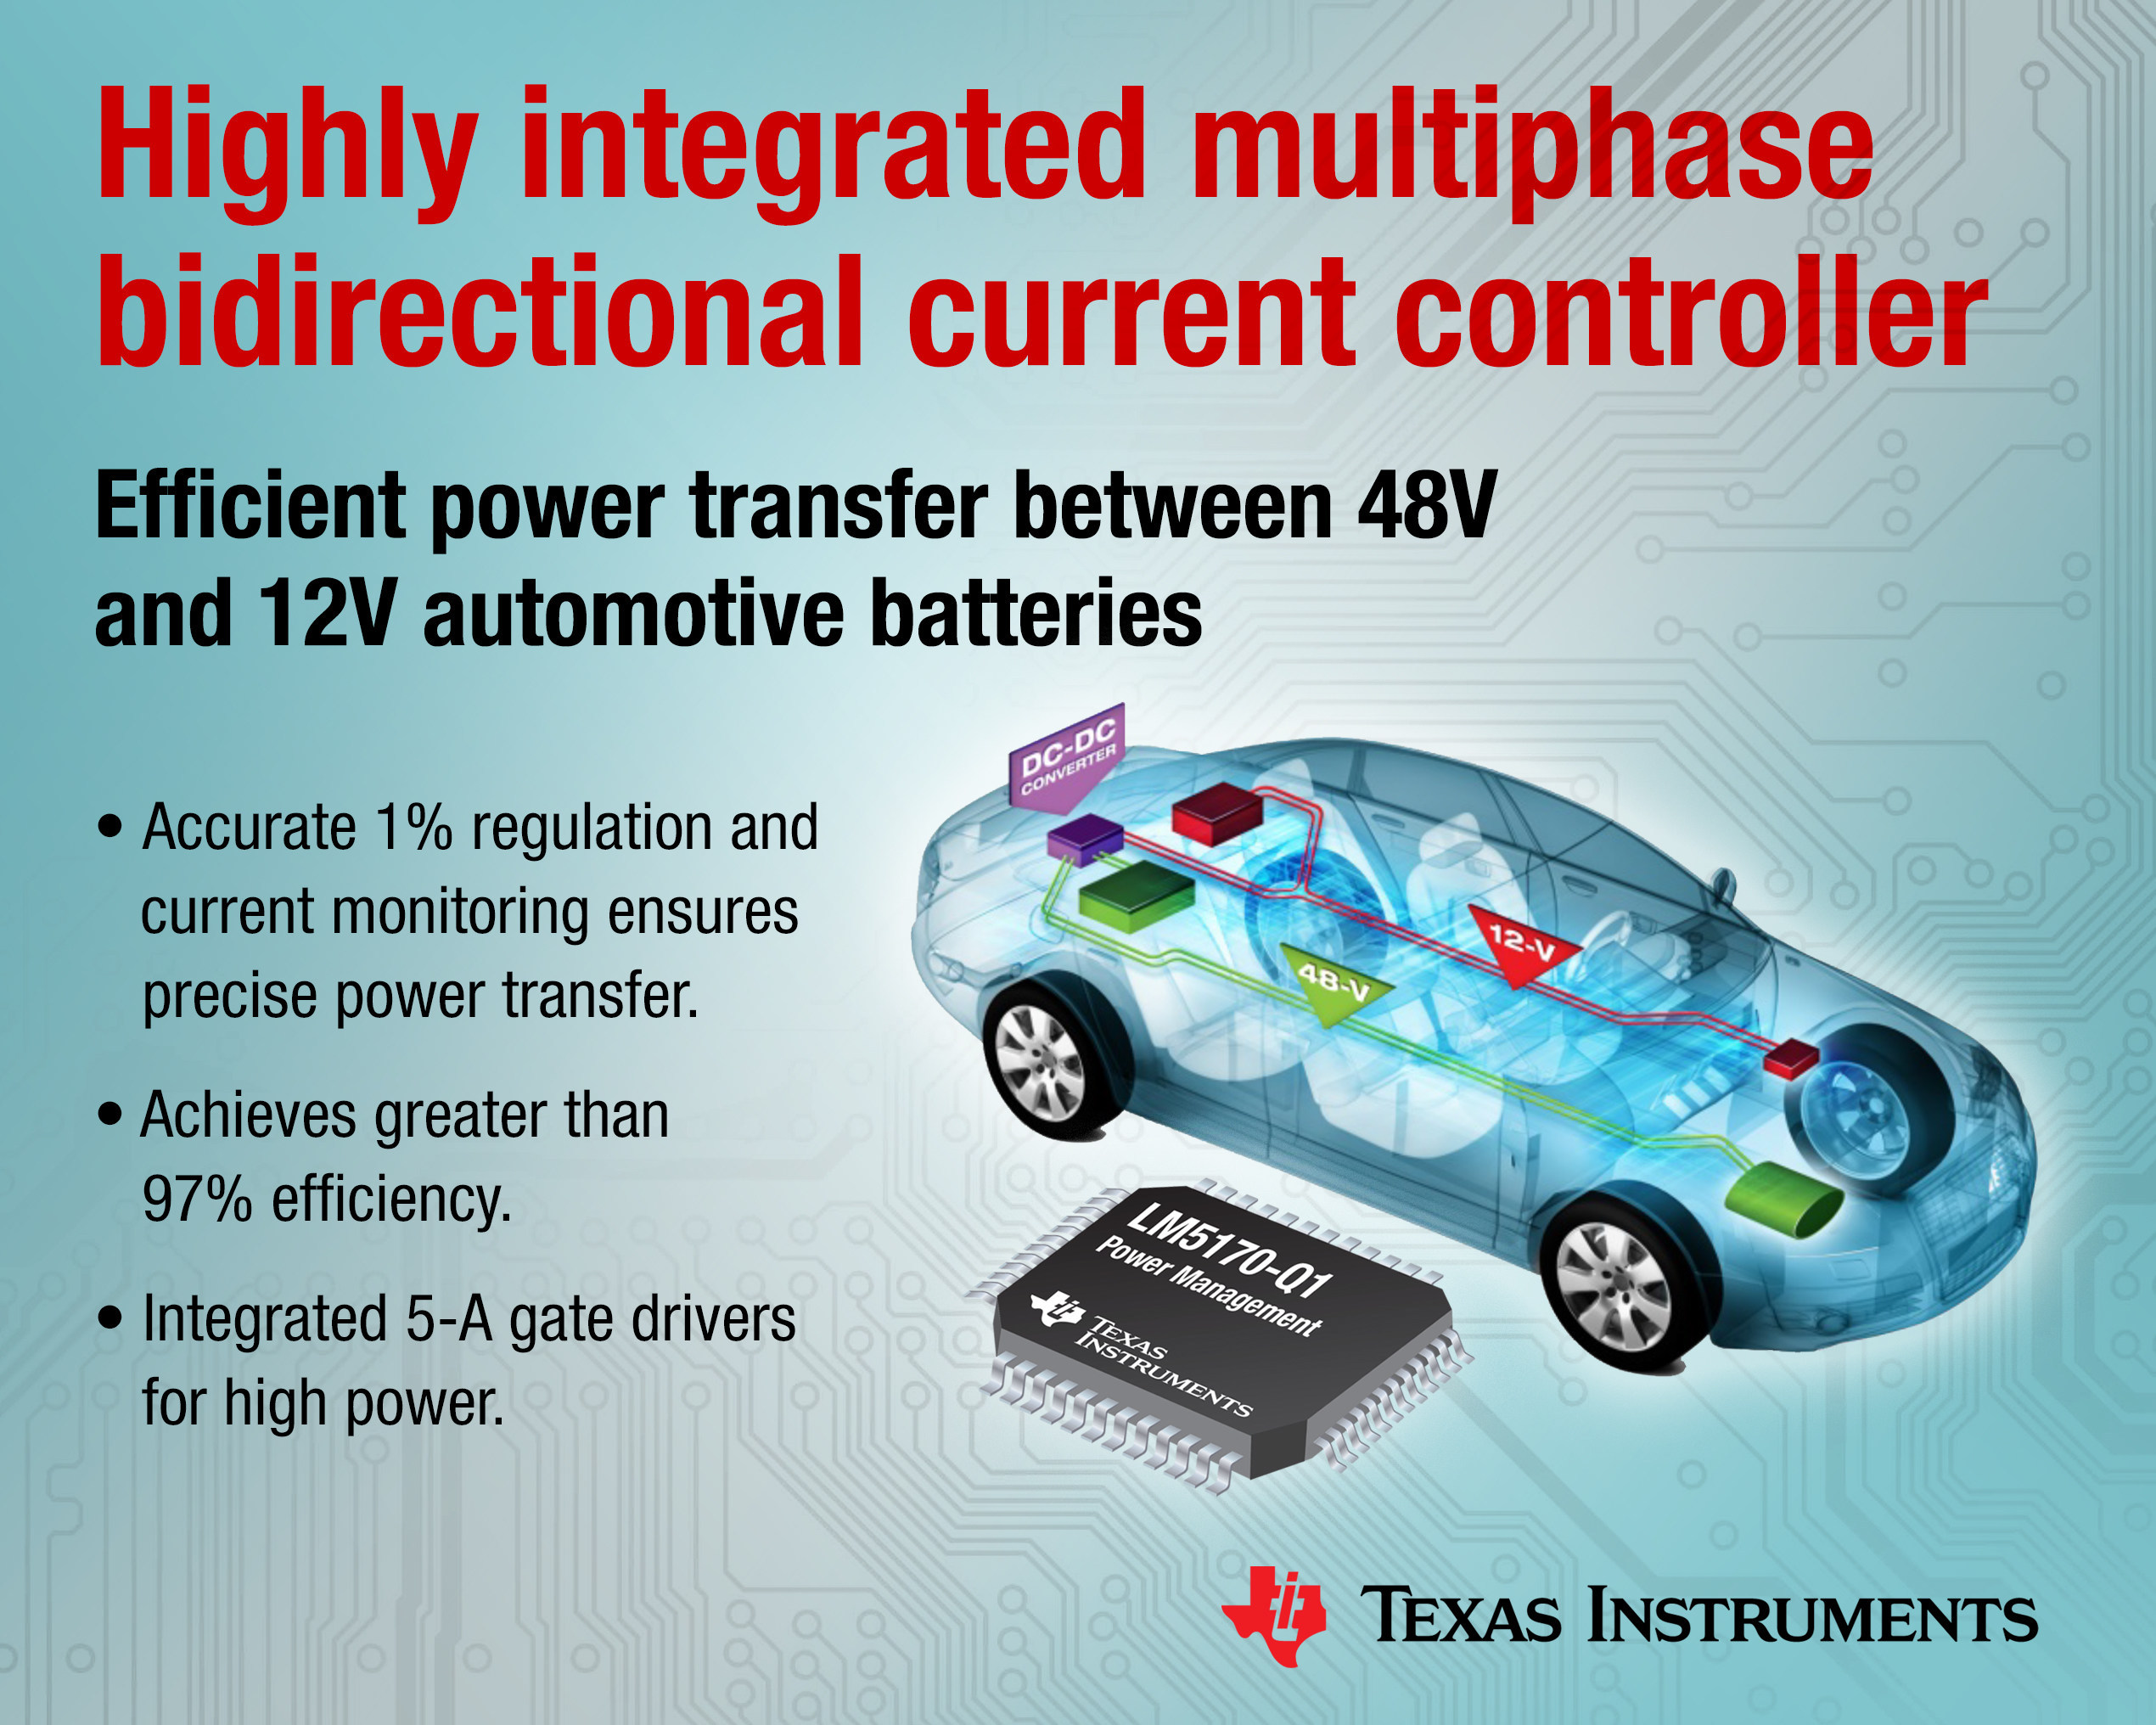 Industry's first multiphase bidirectional current controller from Texas Instruments efficiently transfers power between dual automotive battery systems.